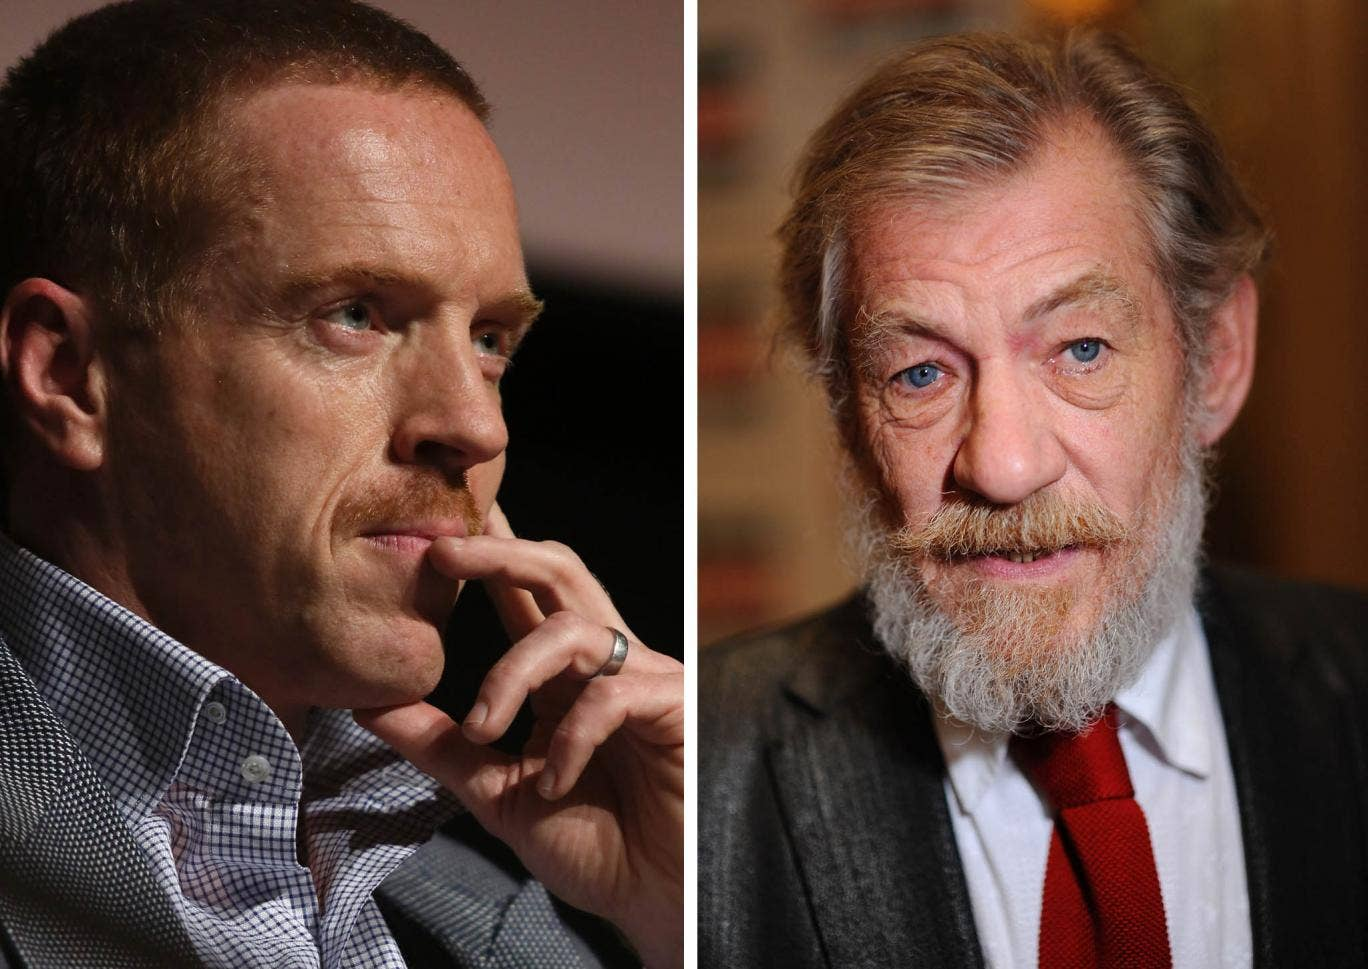 Damian Lewis has attempted to make amends with Sir Ian McKellen after offending him in a recent interview